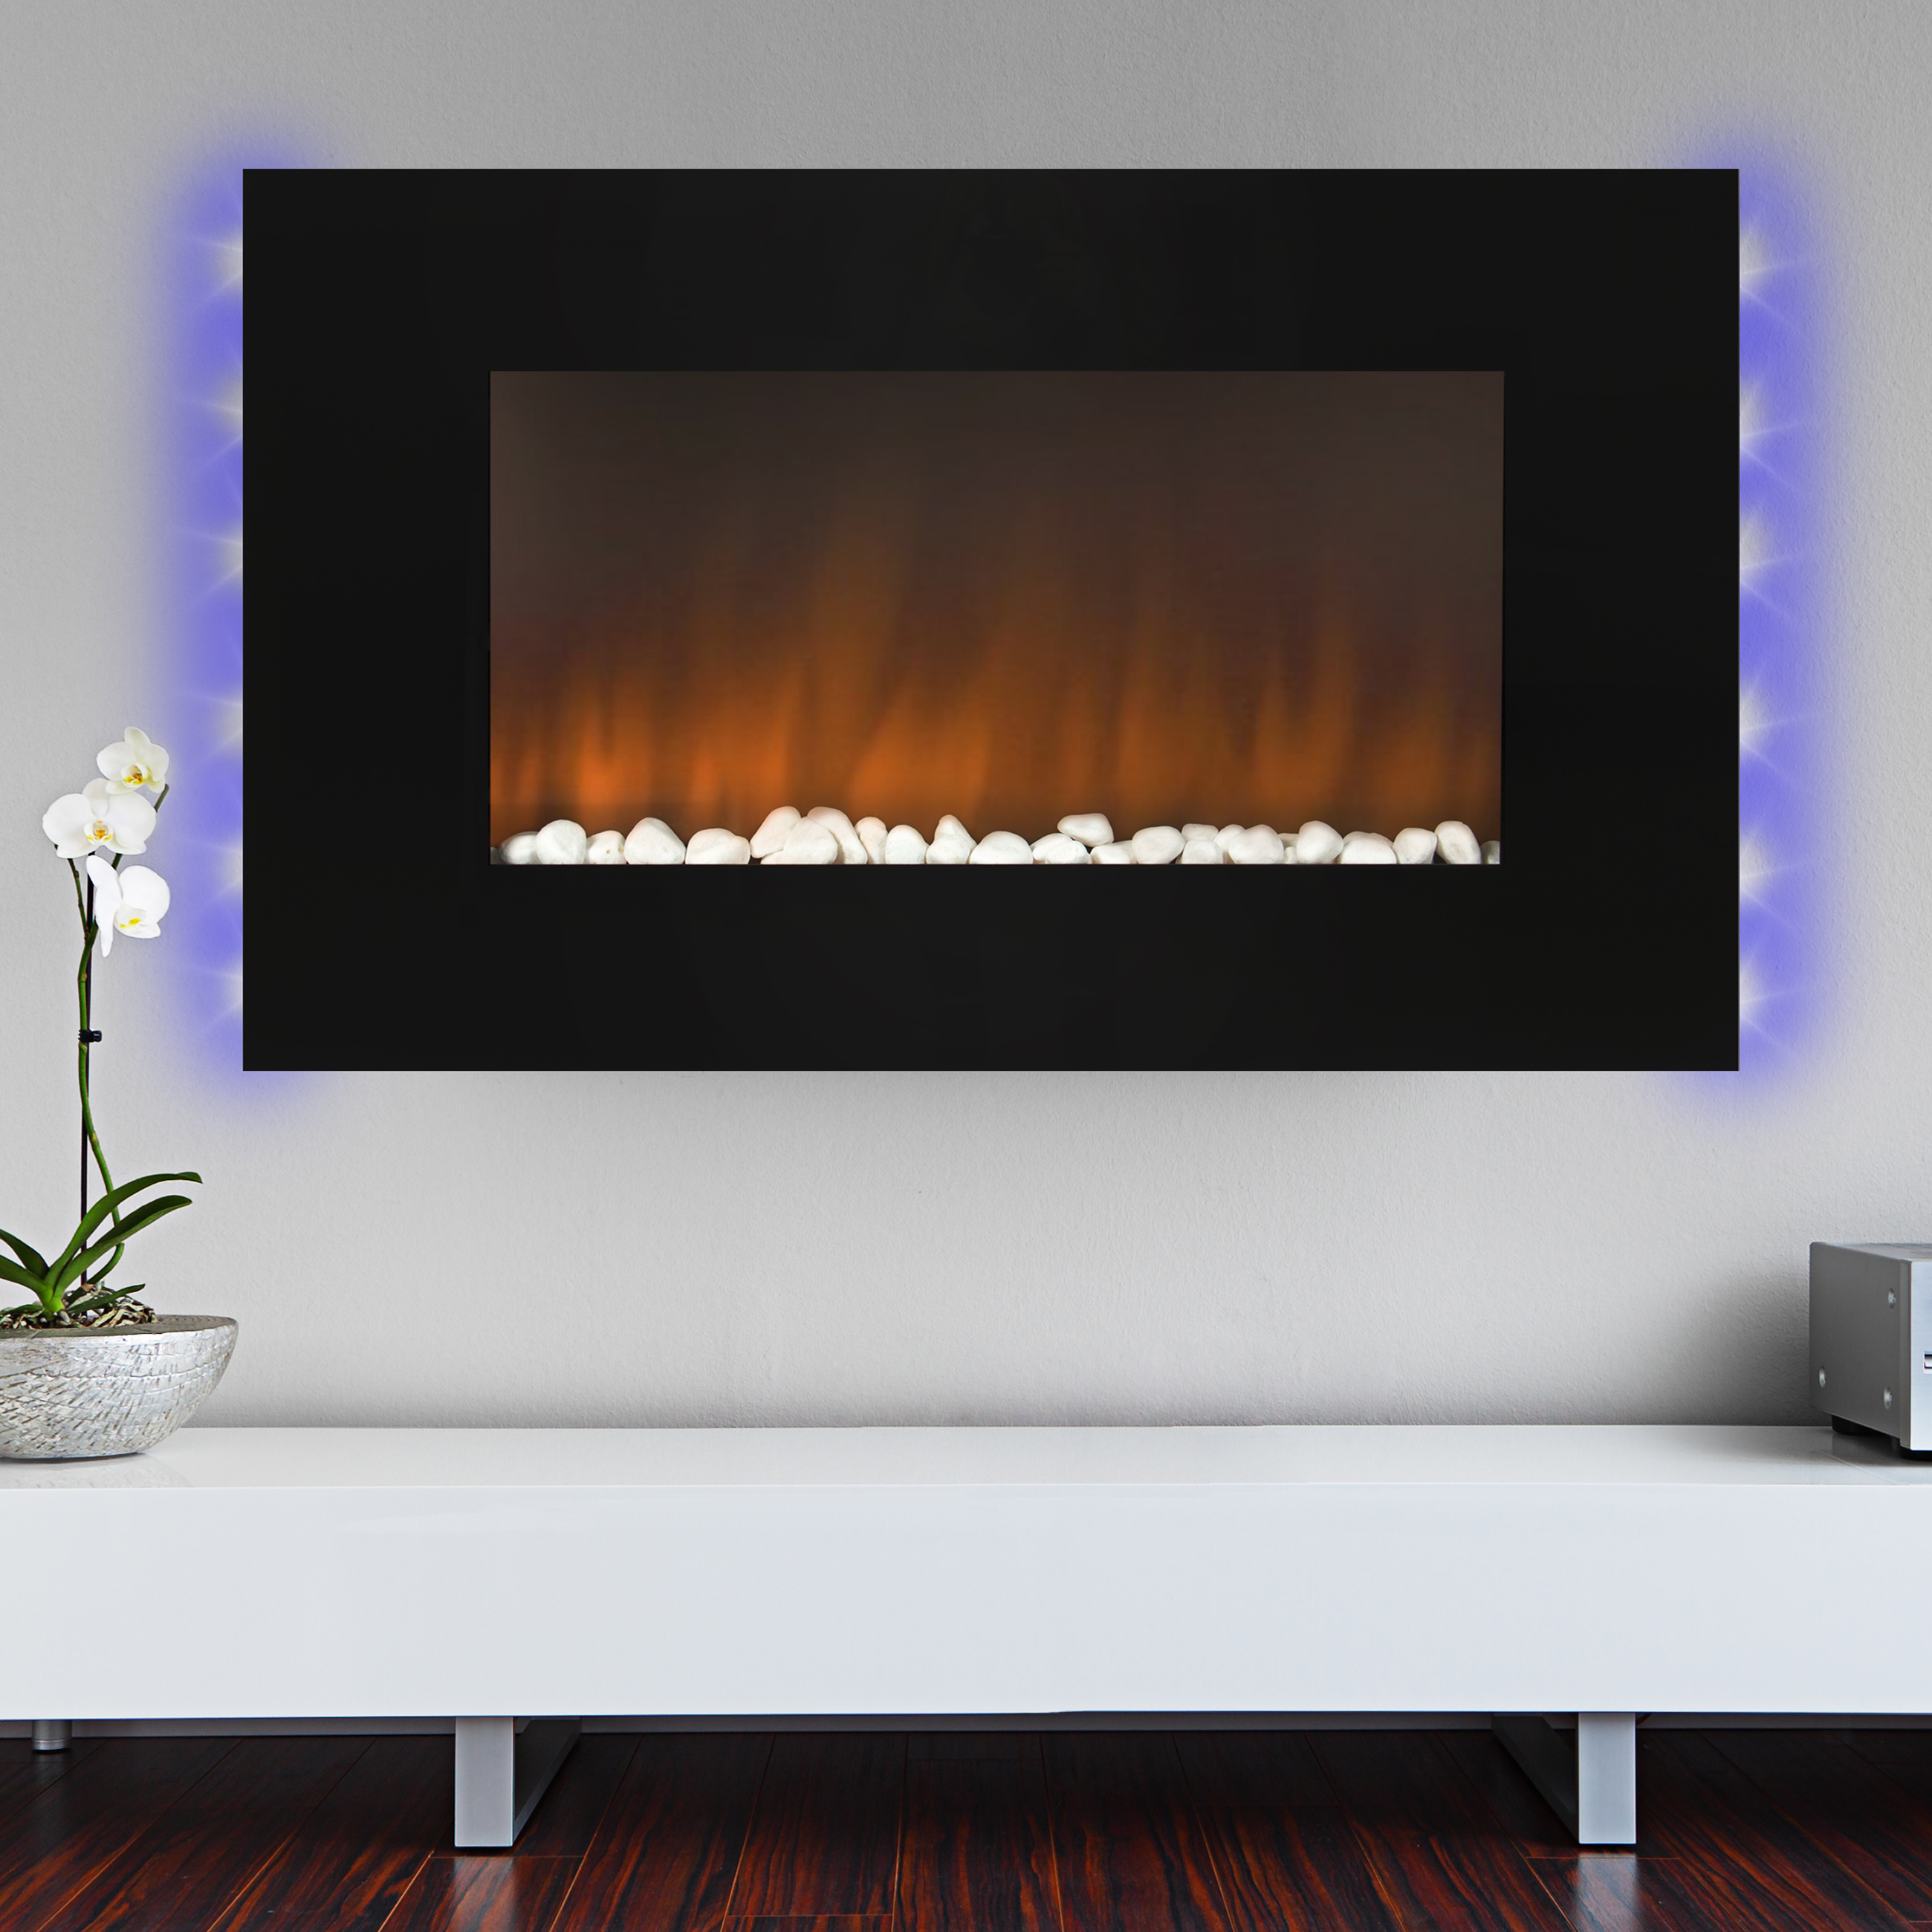 "Best Choice Products 1500W Heat Adjustable 36"" Wall Mount Electric Fireplace Heater Multi Color LED Backlight"